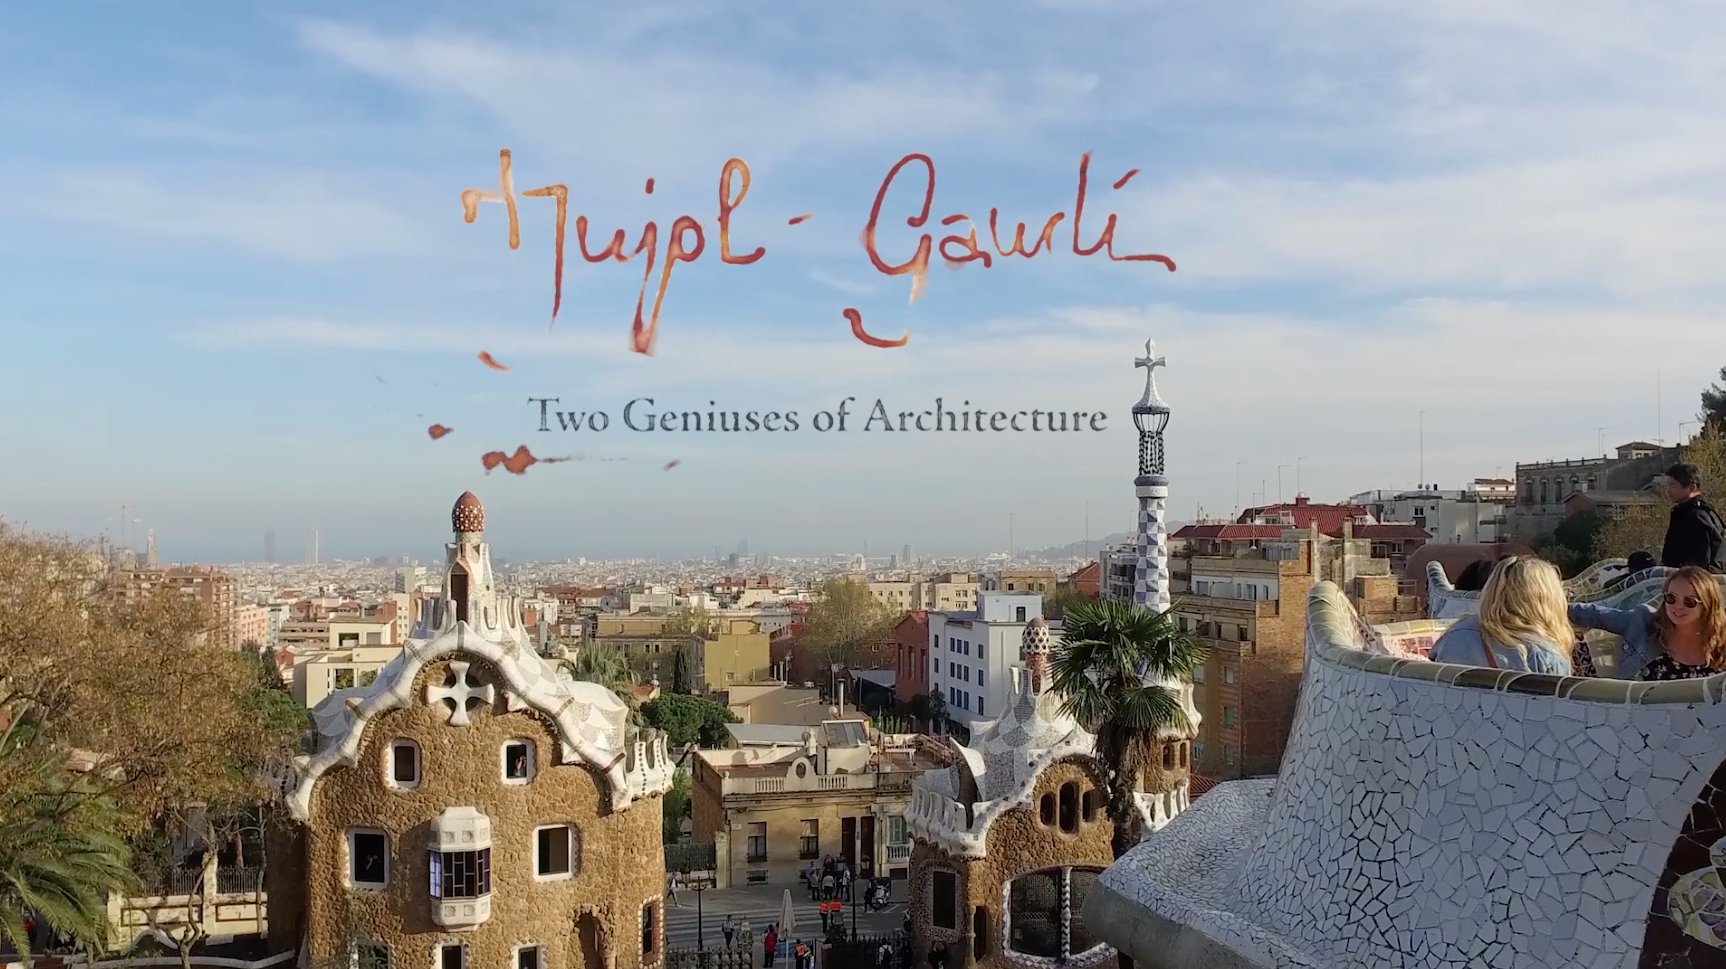 Jujol-Gaudi, two genius of Architecture